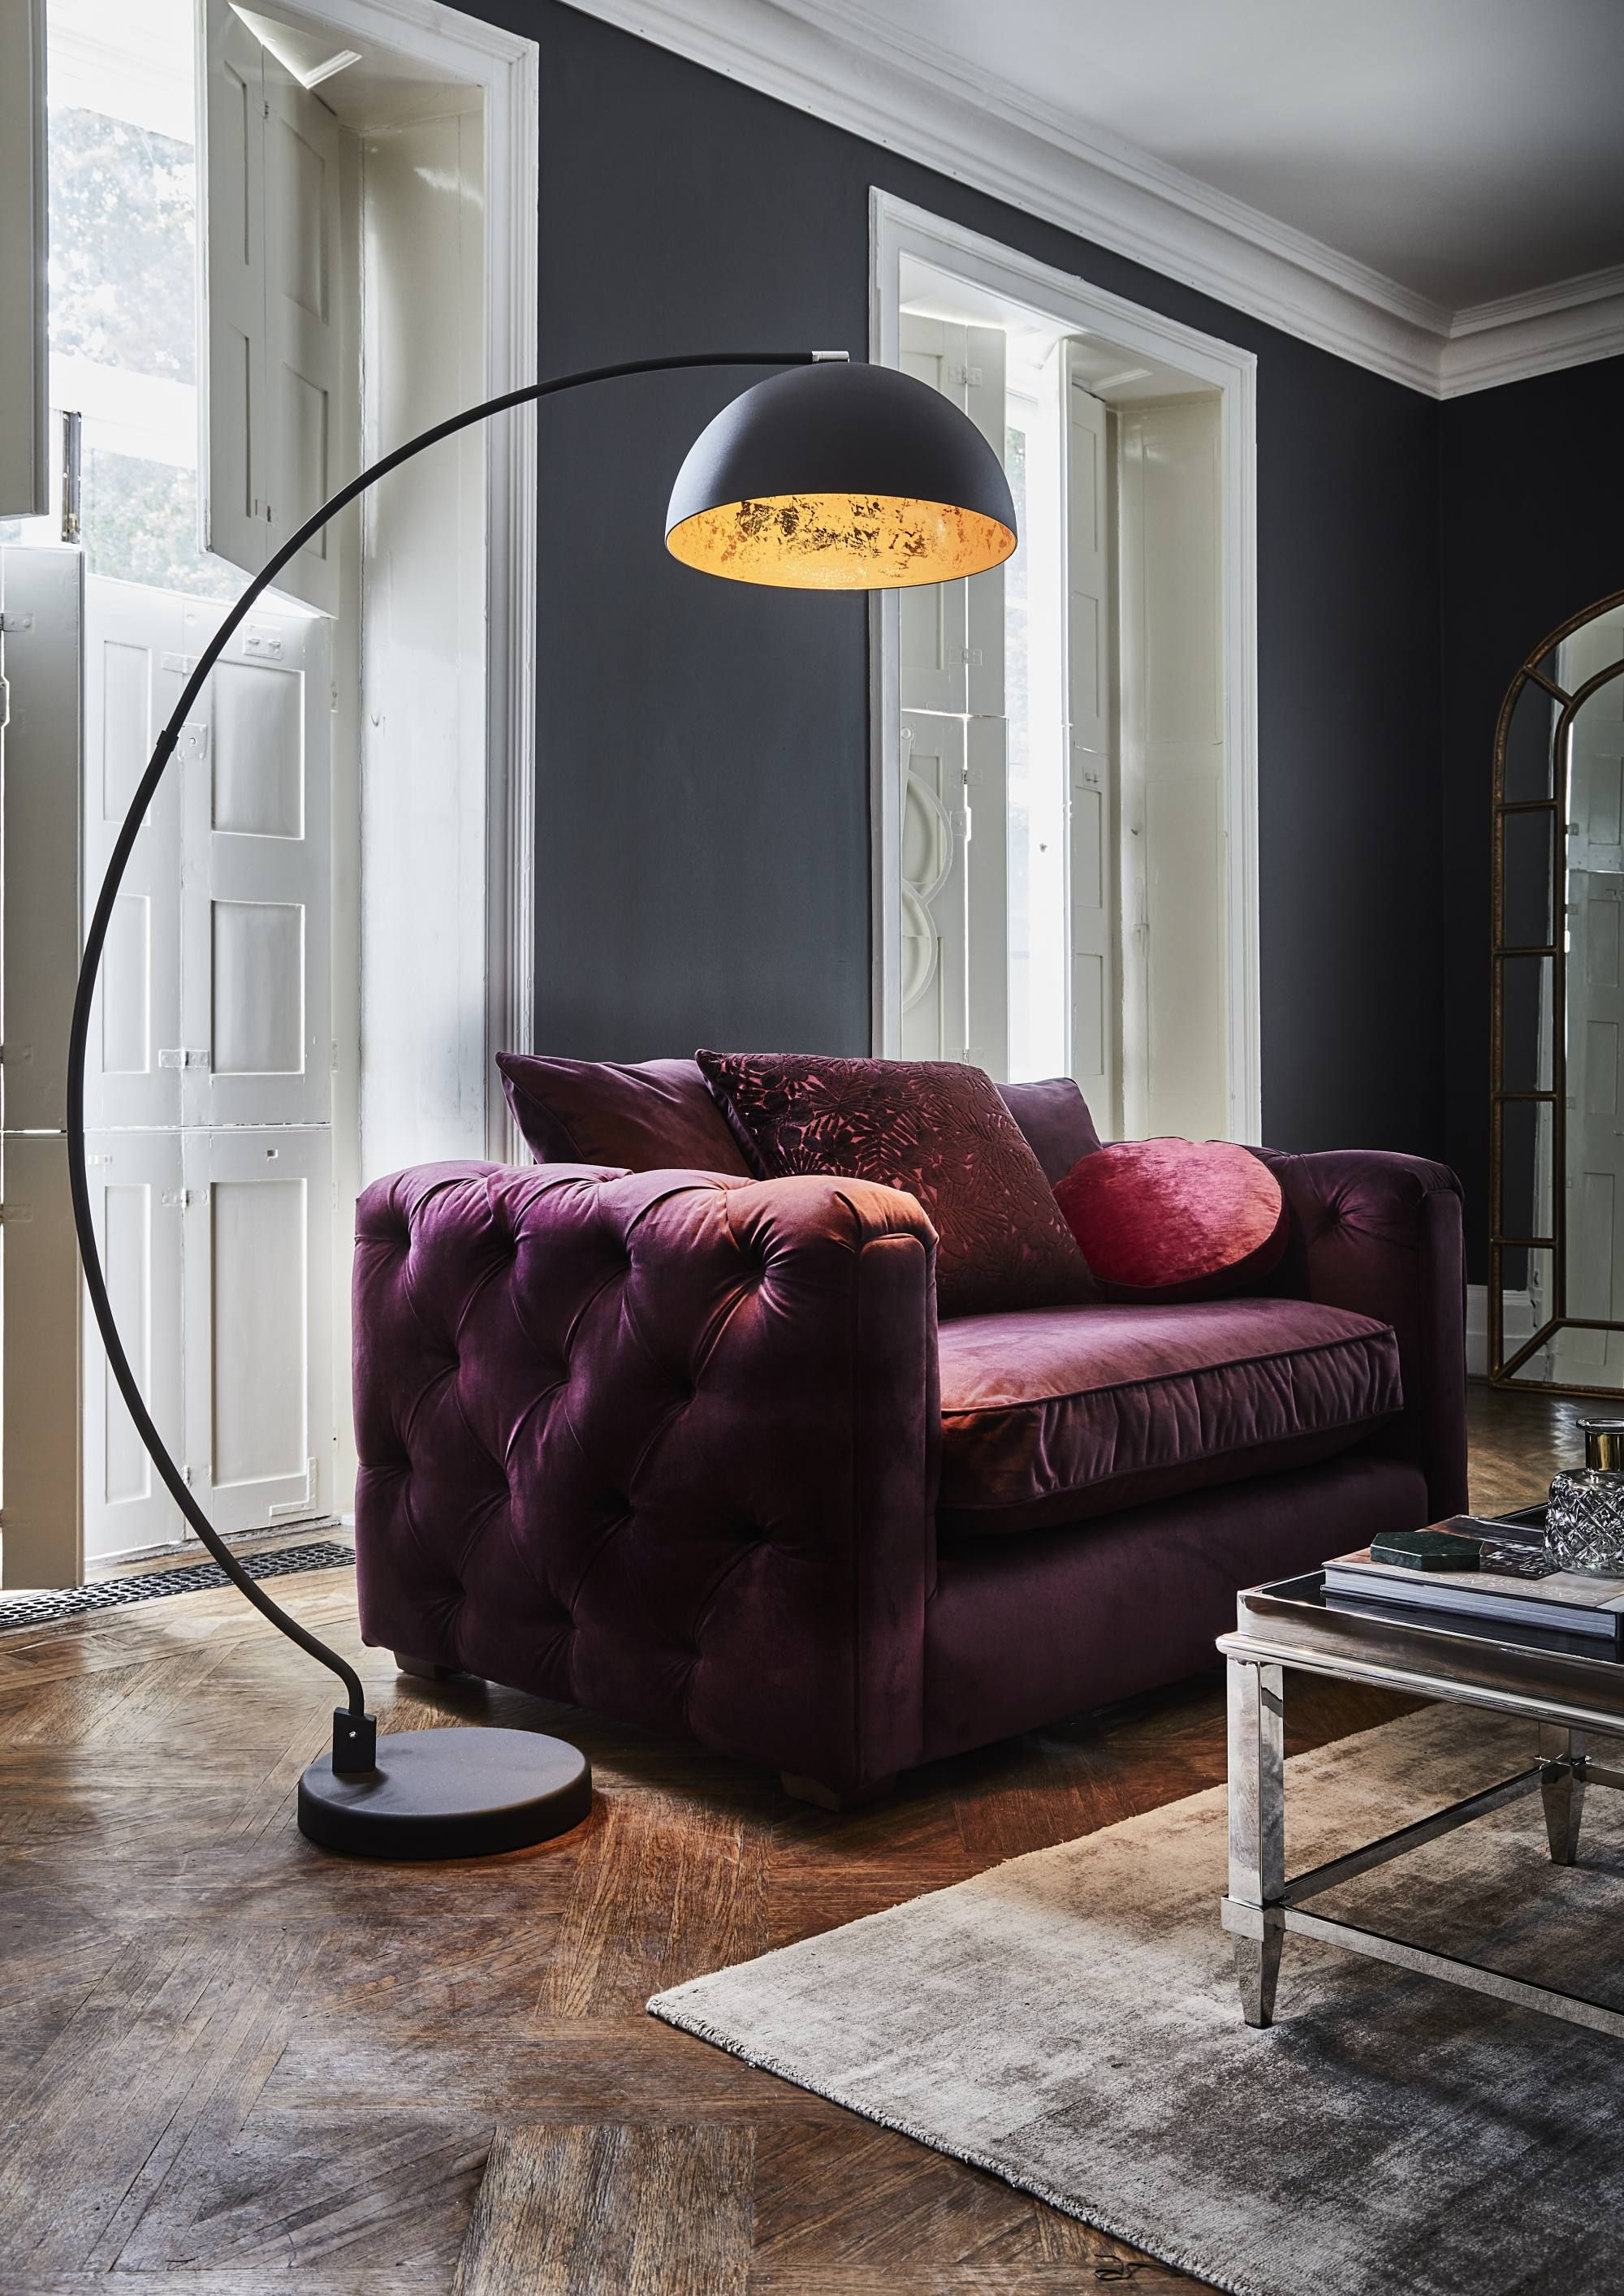 Add A Statement Look To Your Living Room With This Curved Black Floor Lamp Decorative Floor Lamps Beautiful Floor Lamps Black Floor Lamp